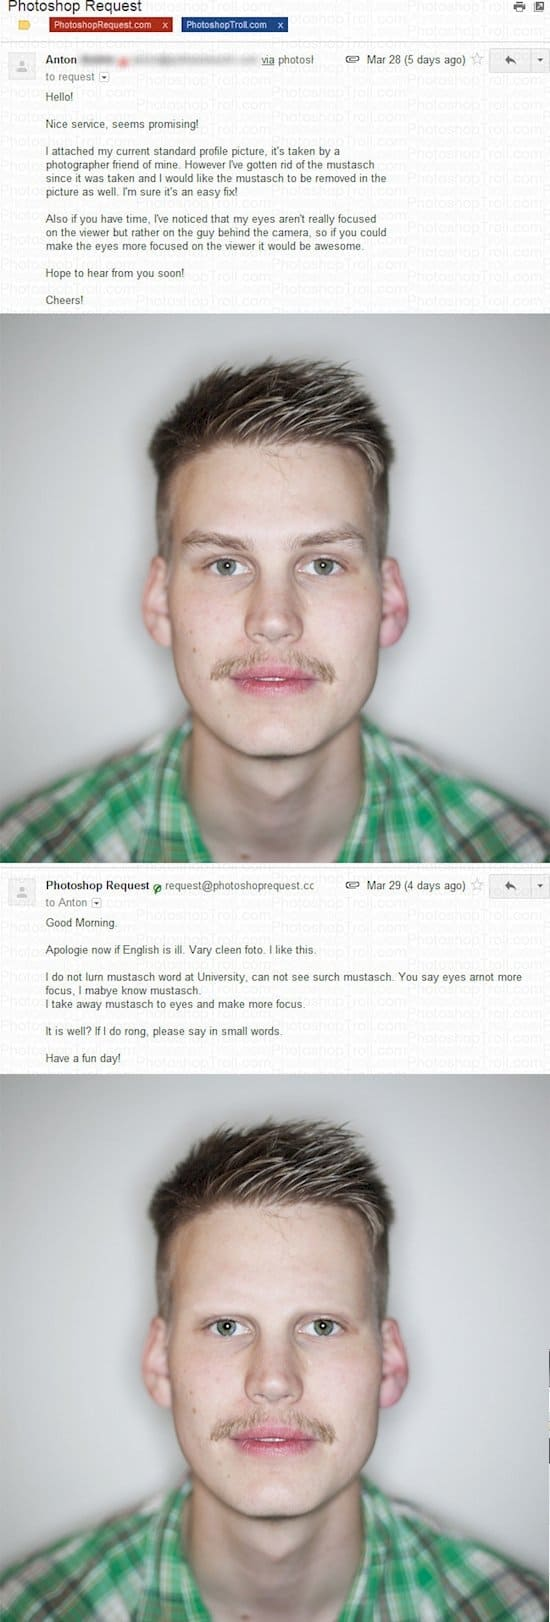 photoshop-requests-funny-results-mustache